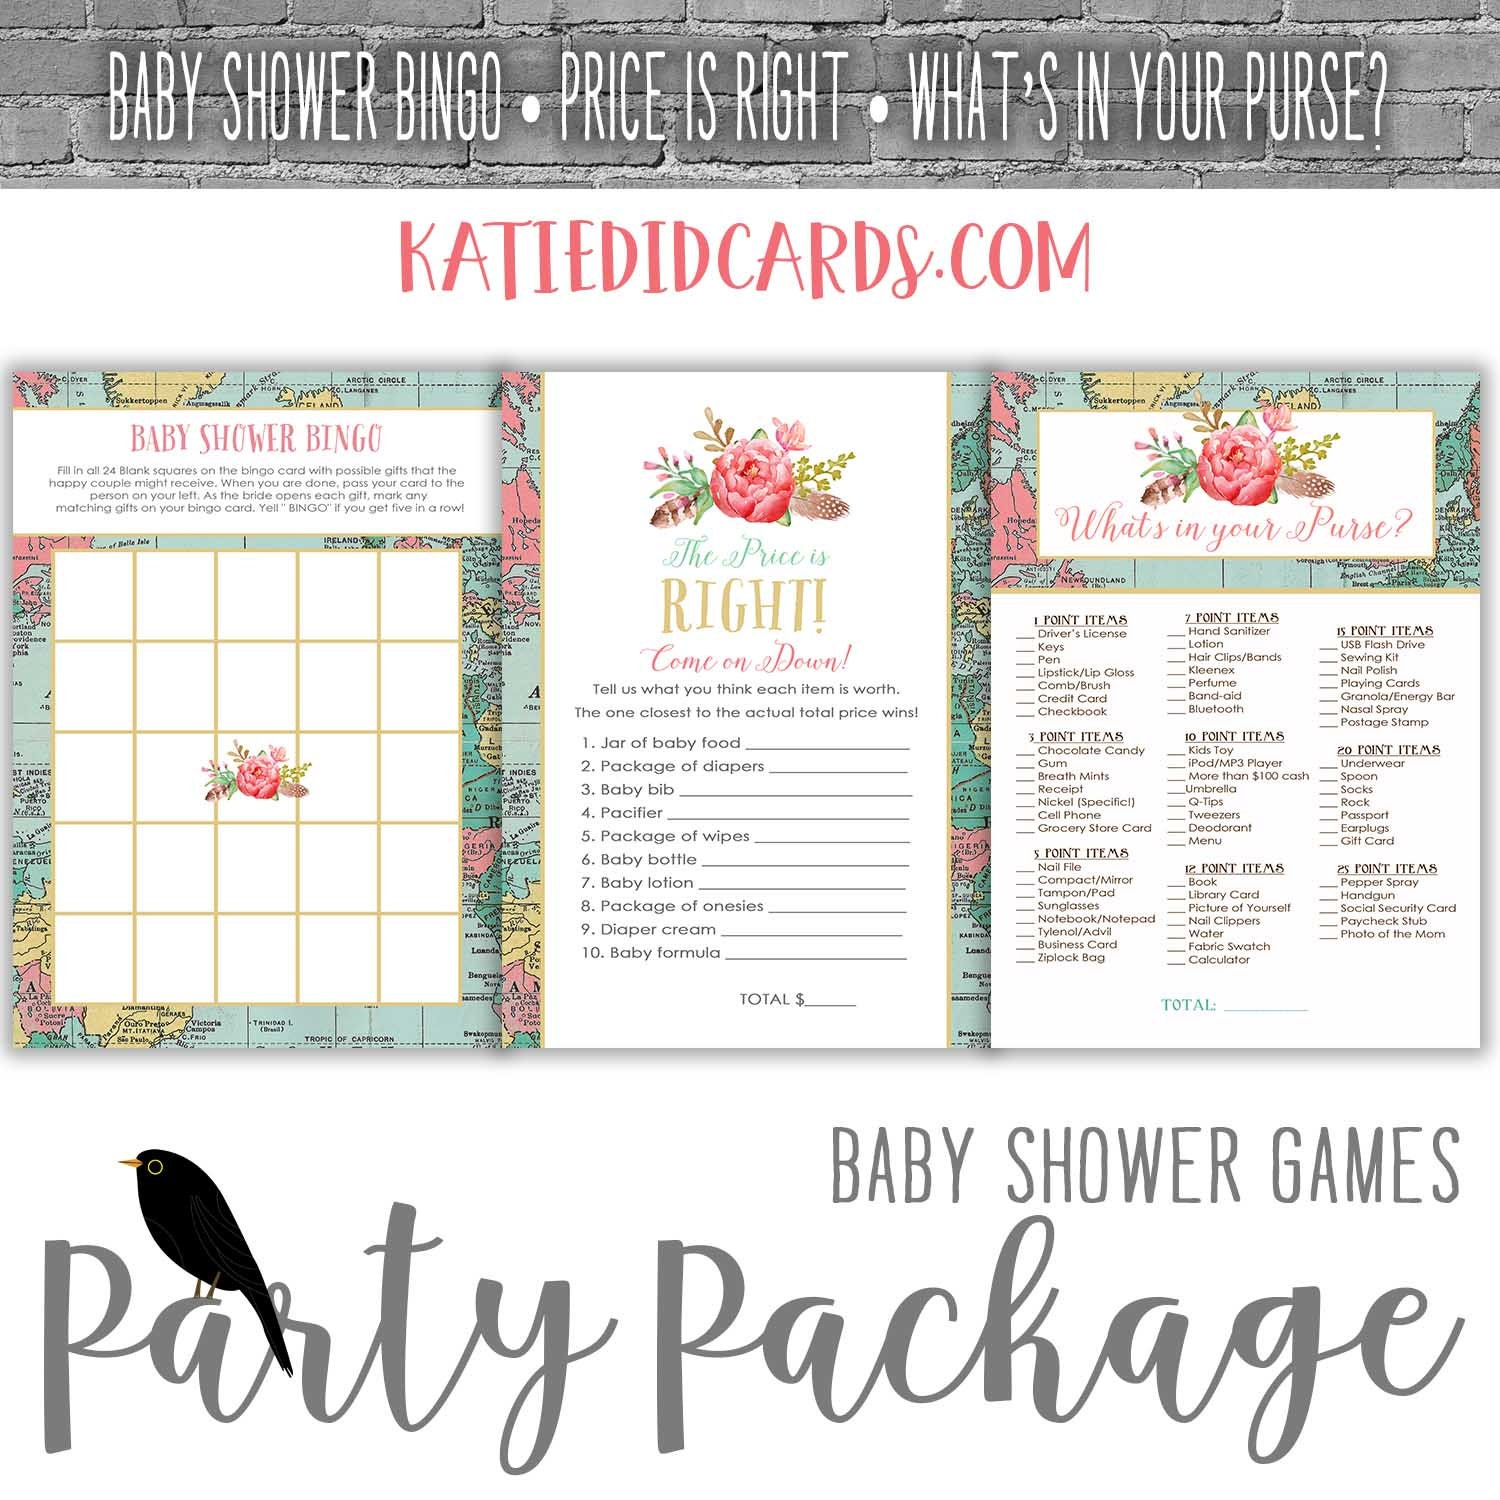 travel theme baby shower party package game world map boho chic coed couples bingo price is